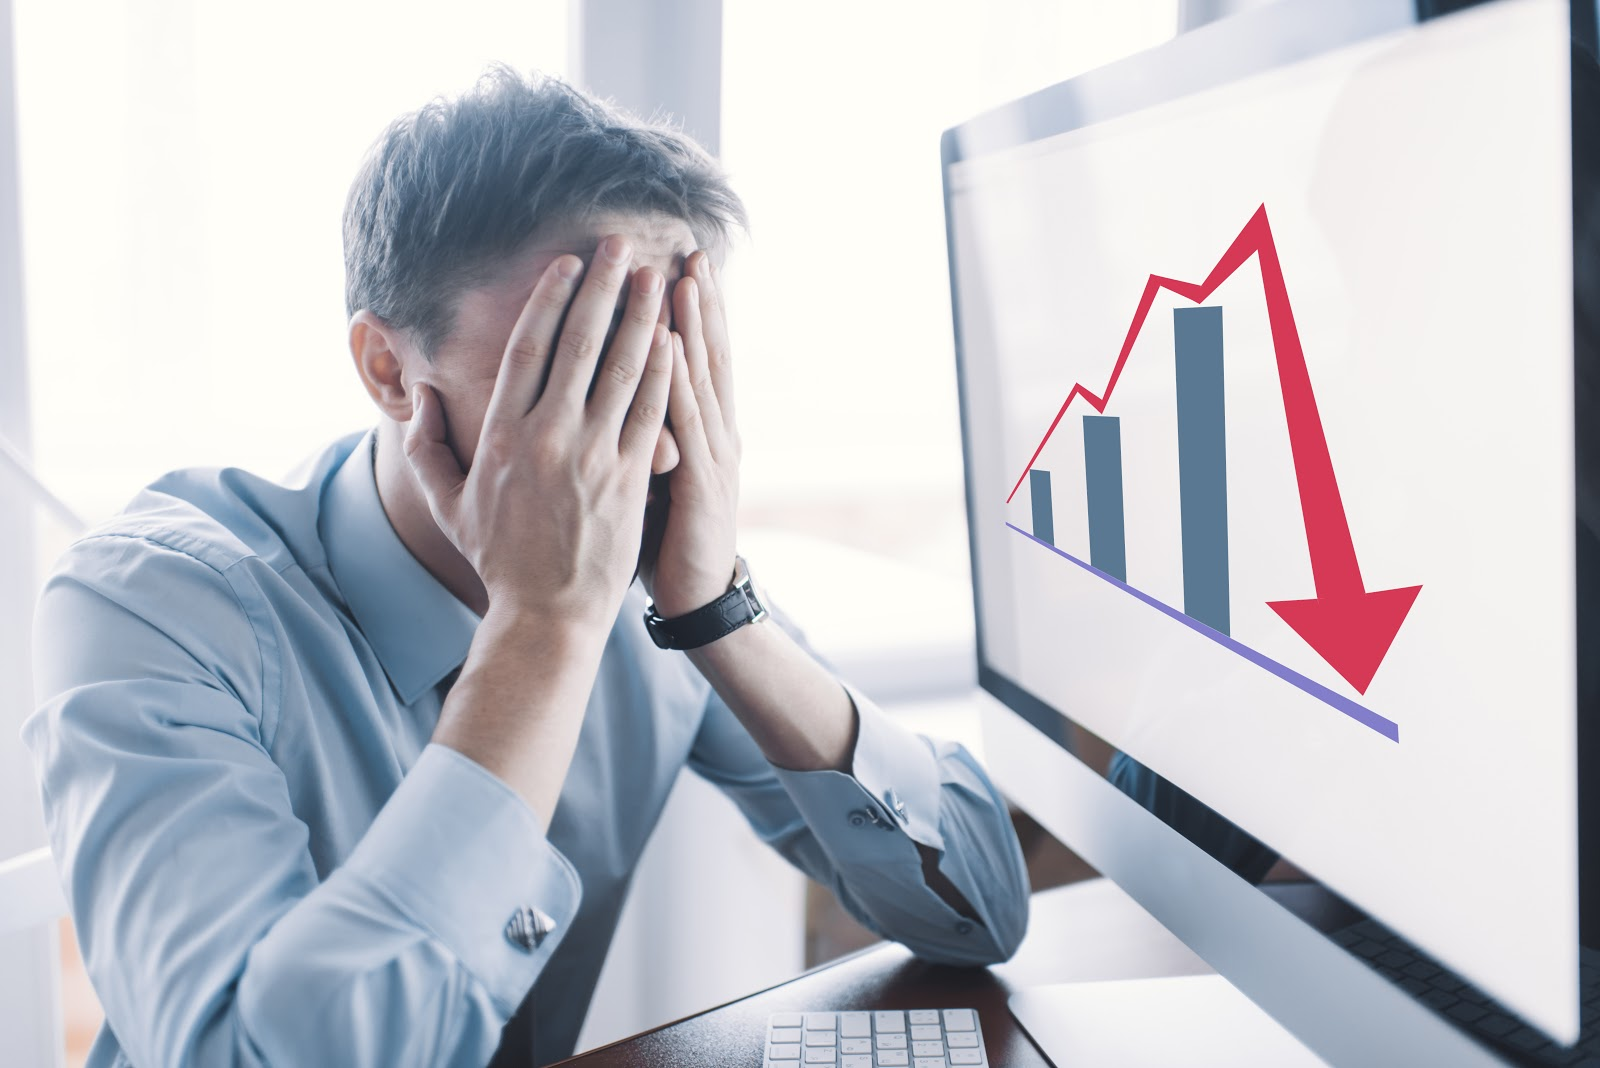 A man looking stressed at a downward trending graph on the computer